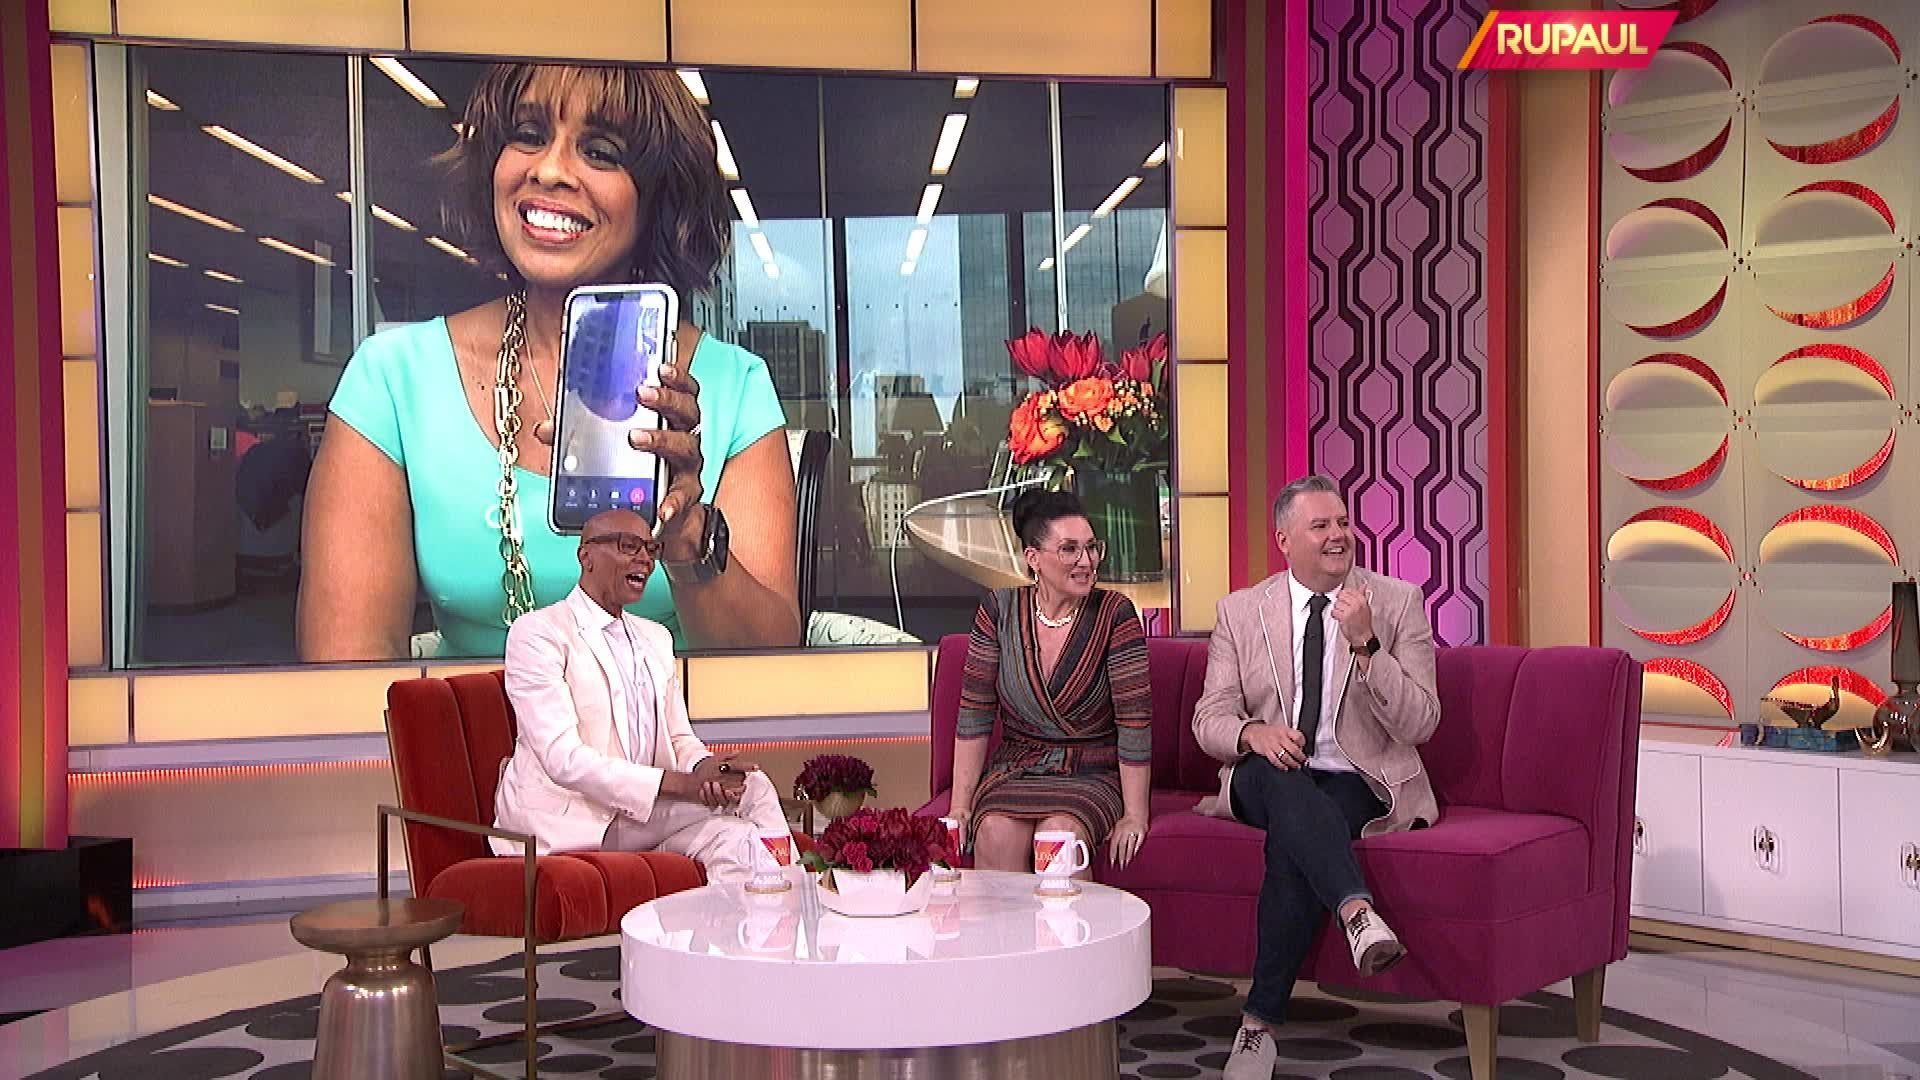 Exclusive: Watch Oprah Surprise RuPaul with the Help of Gayle During His Talk Show